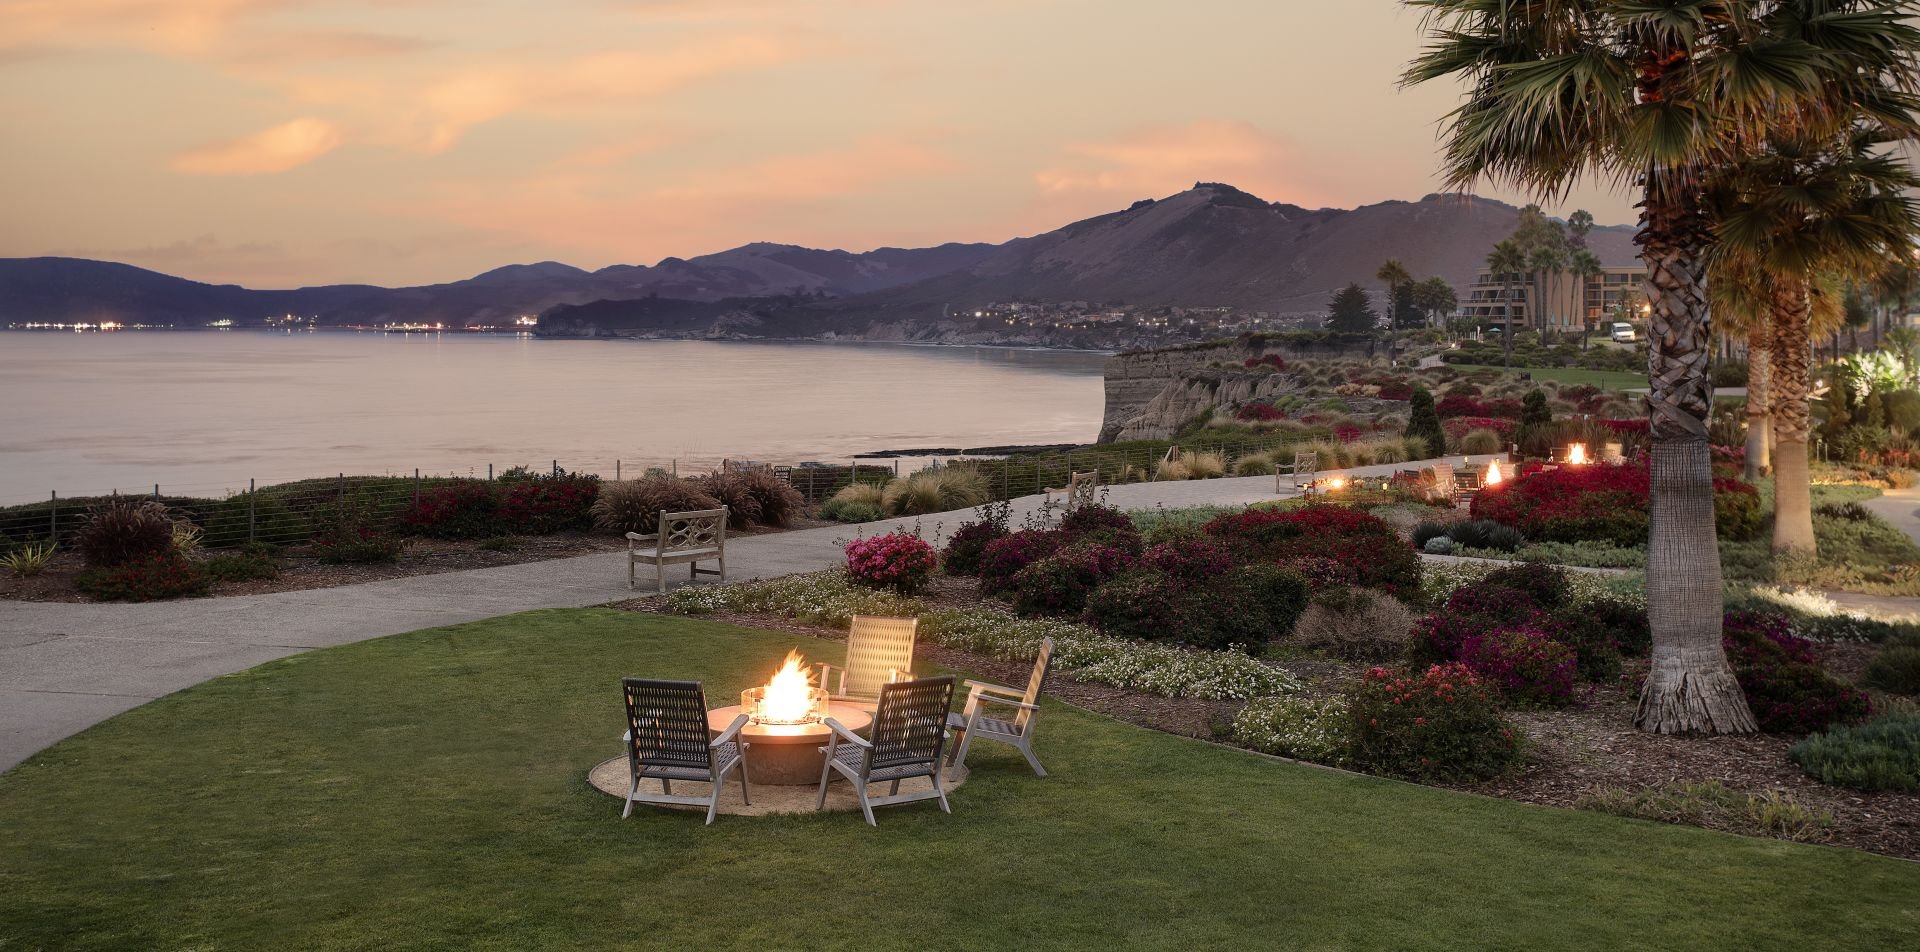 Lawn with firepit overlooking ocean and mountains